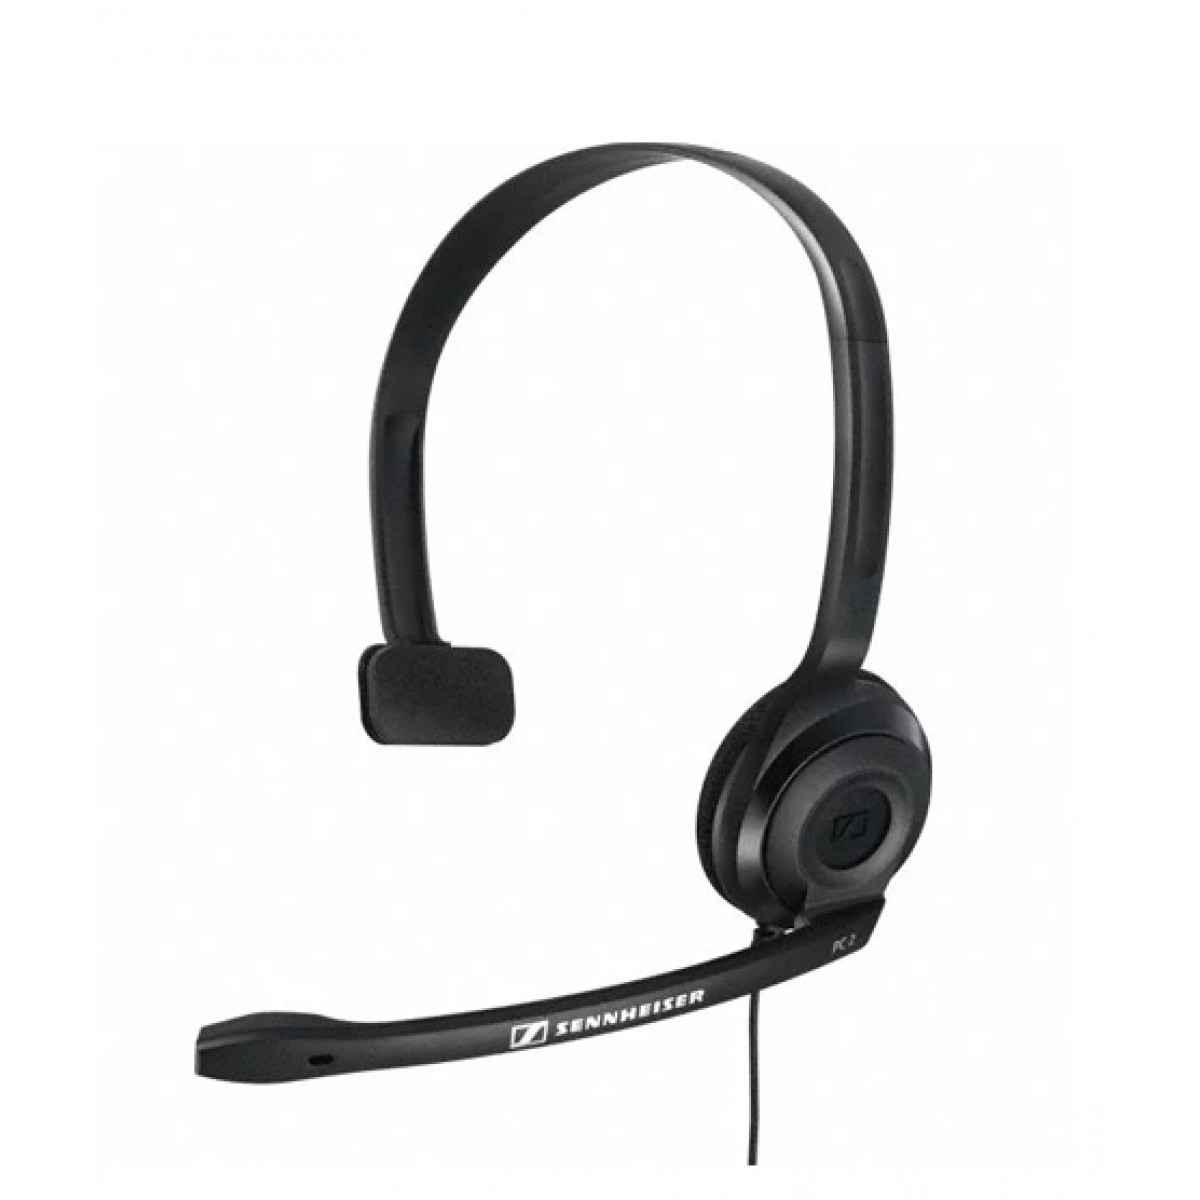 Sennheiser Headset (PC-2-CHAT)